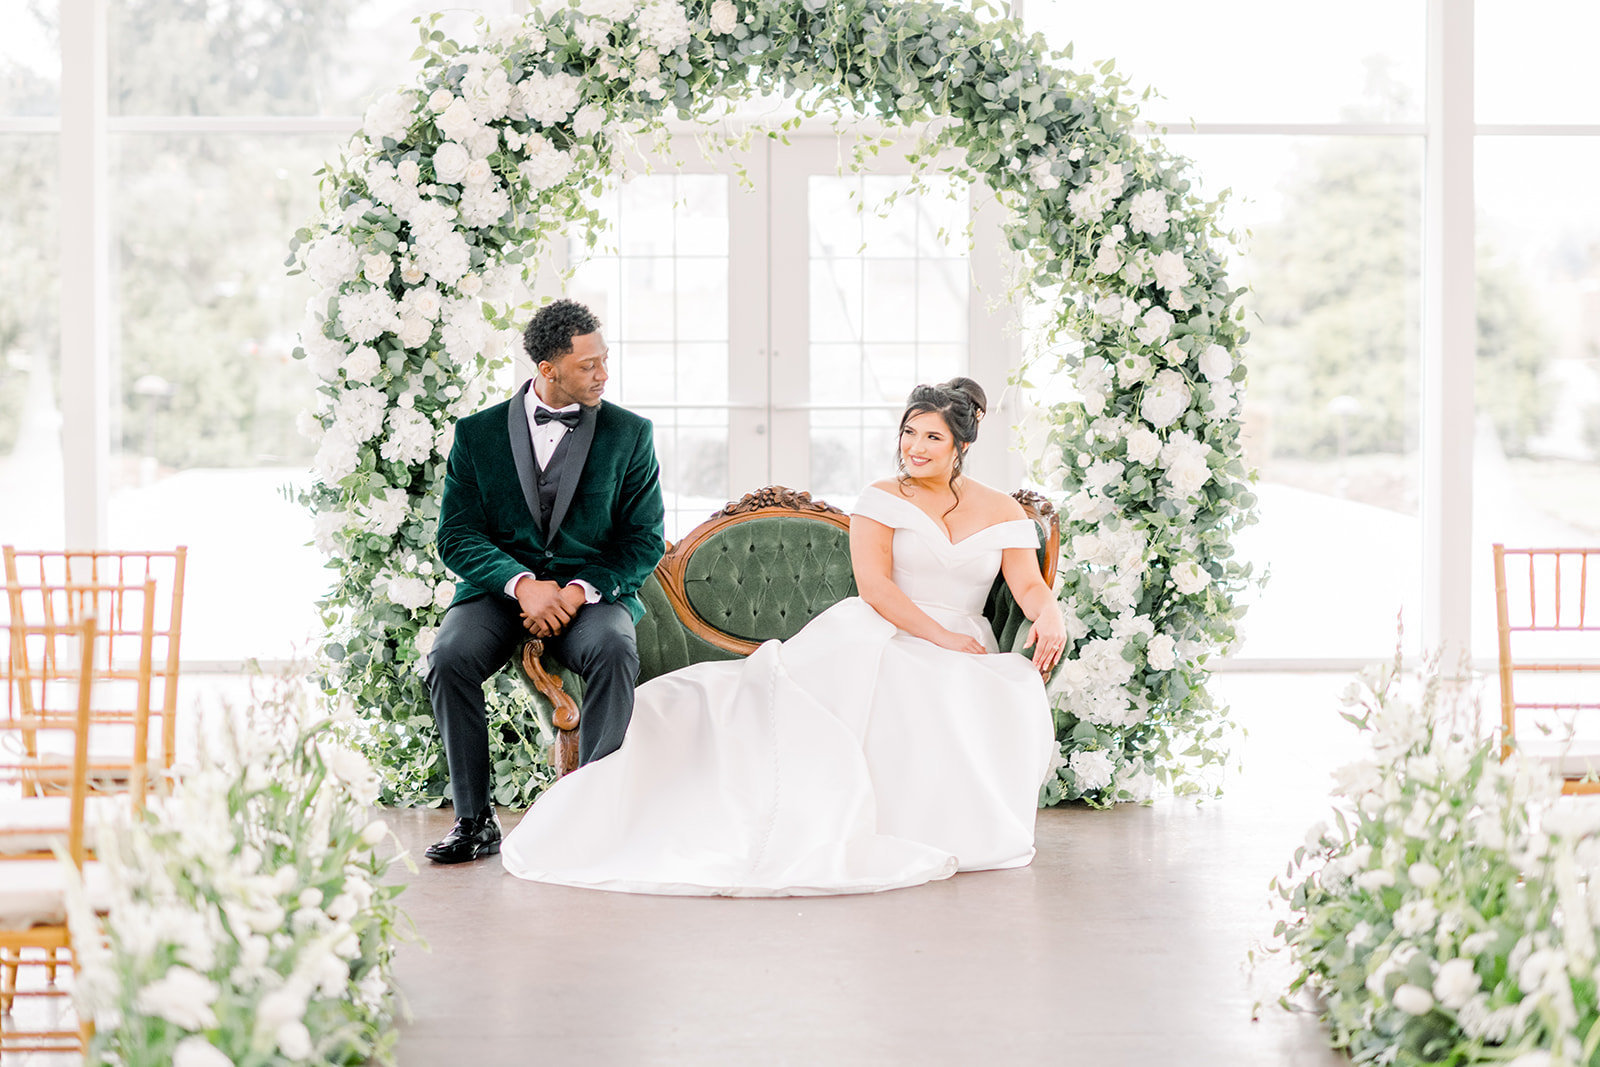 Ritz Charles Emerald Styled Shoot 2020 - Alison Mae Photography - Indianapolis Wedding Photographer-186